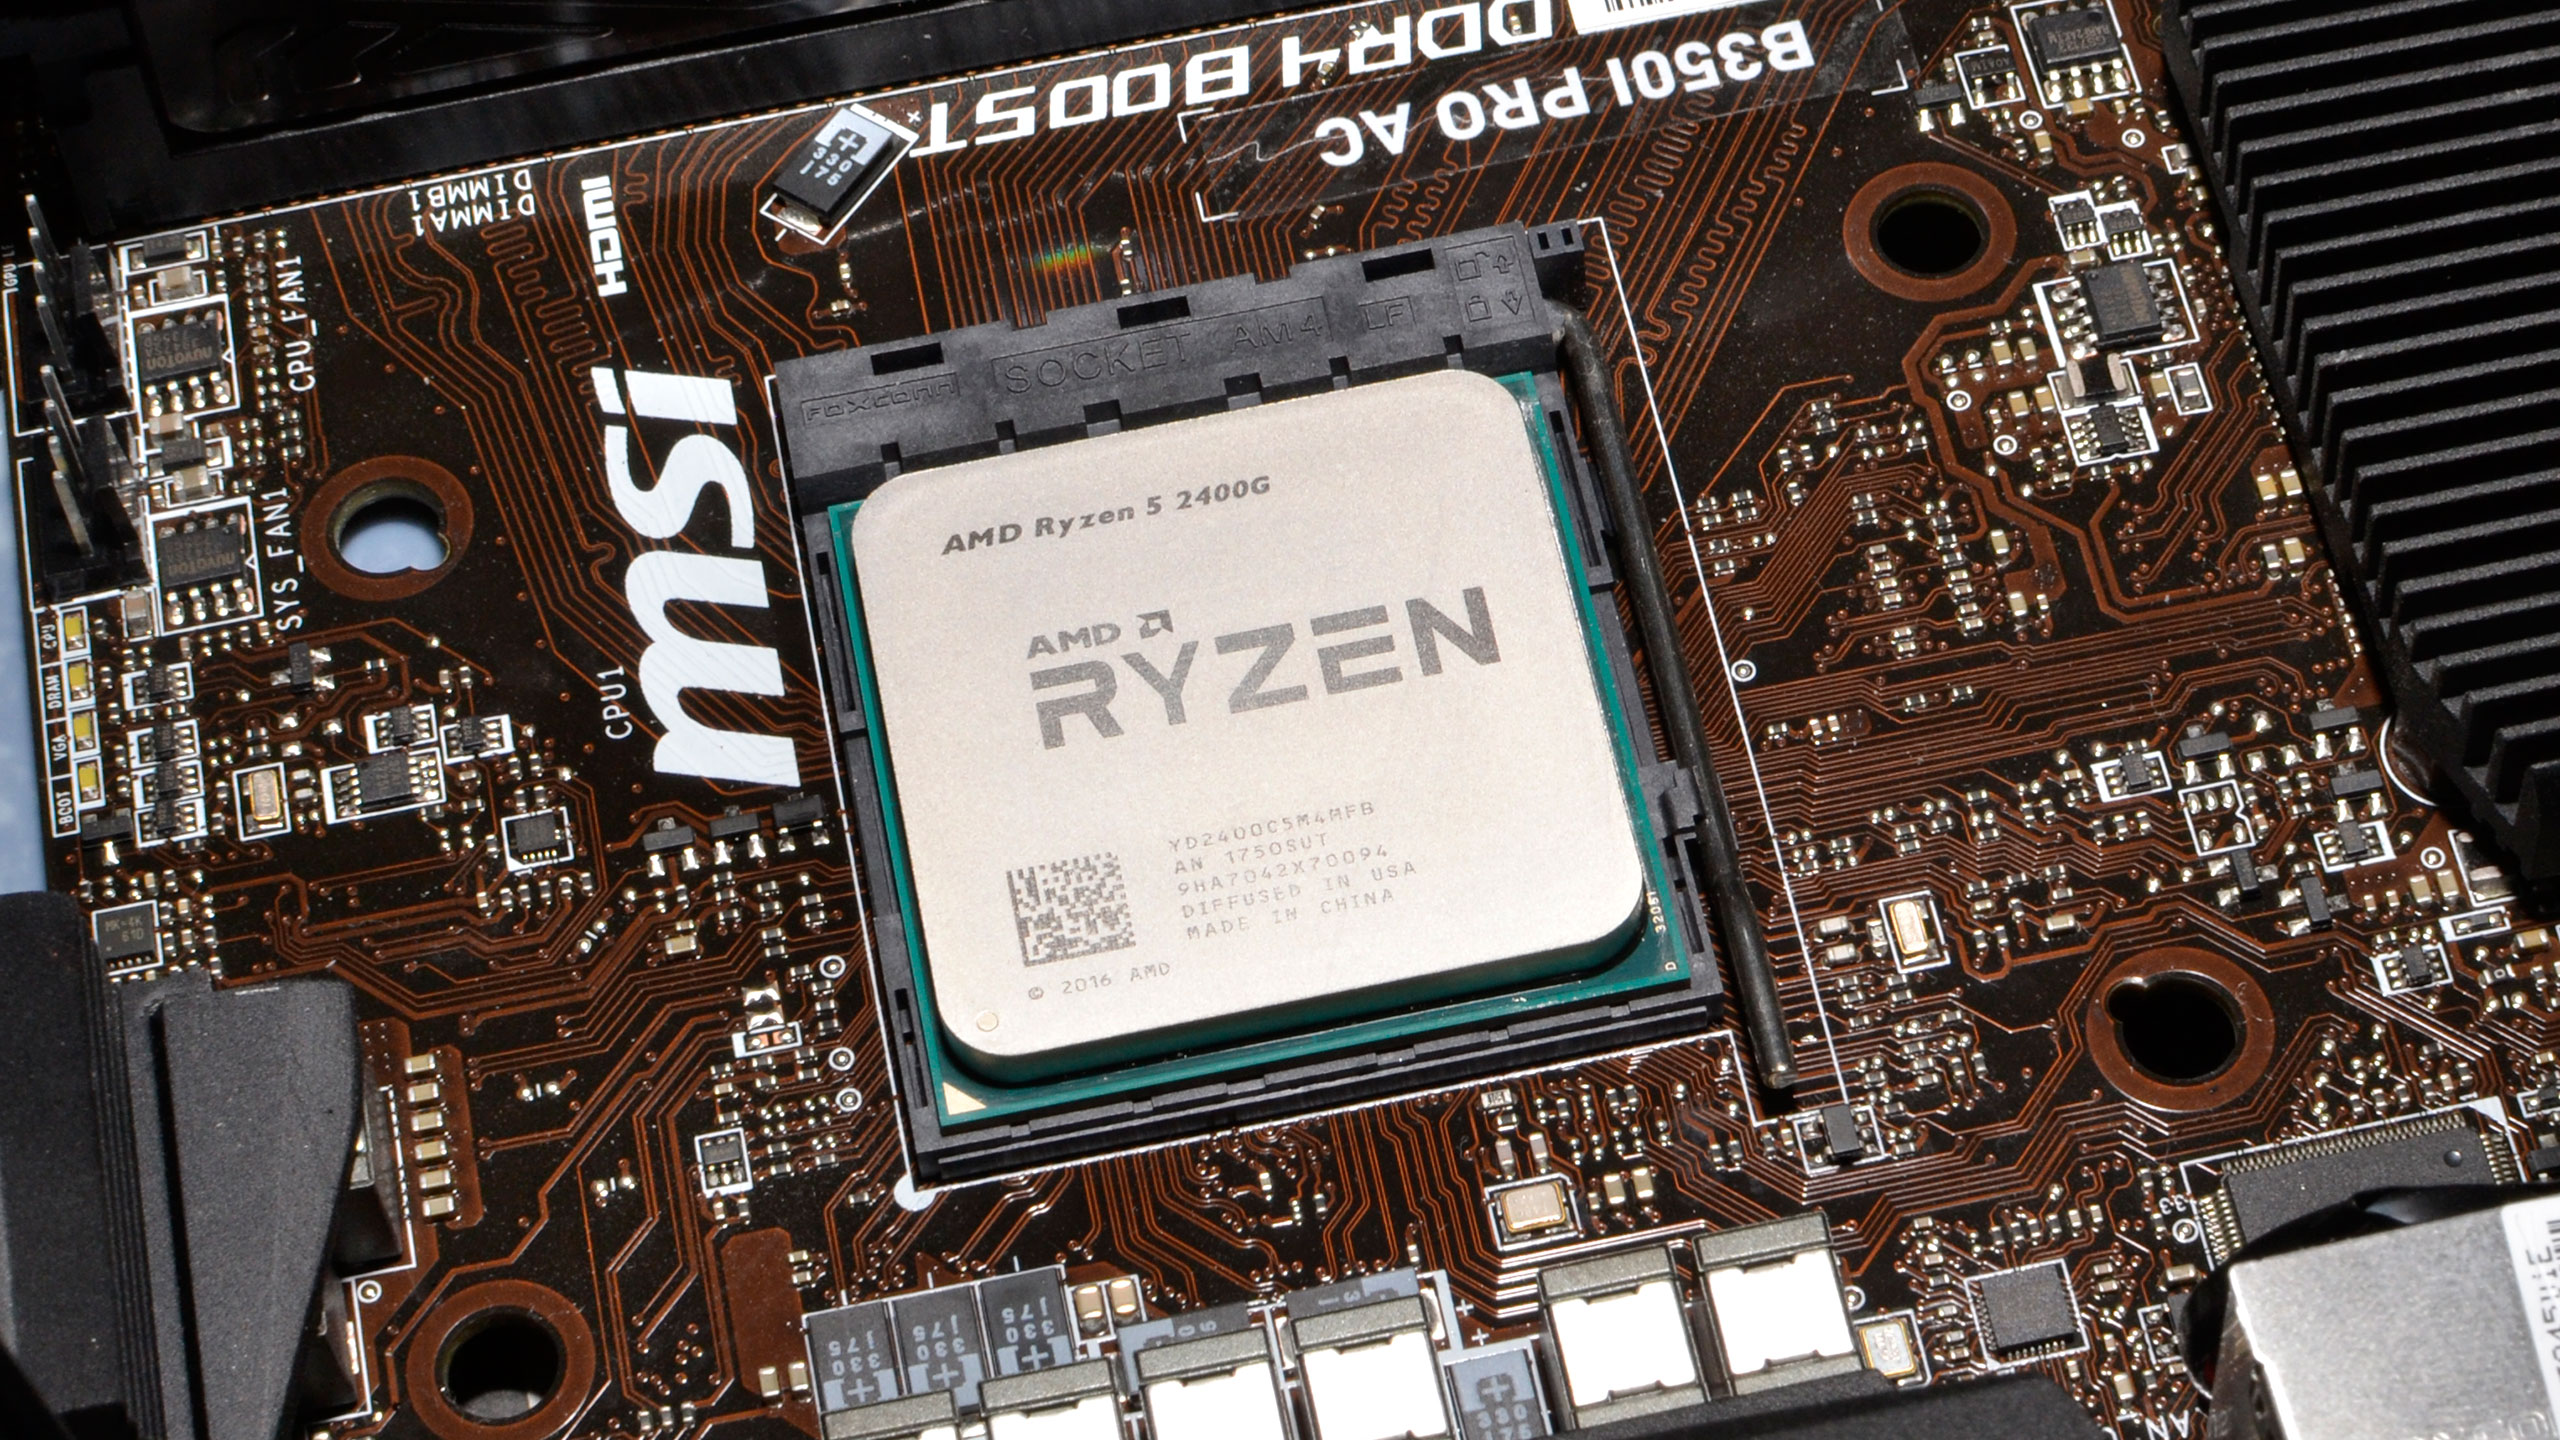 Unreleased AMD Ryzen 7 5700G chip listed on eBay for $500